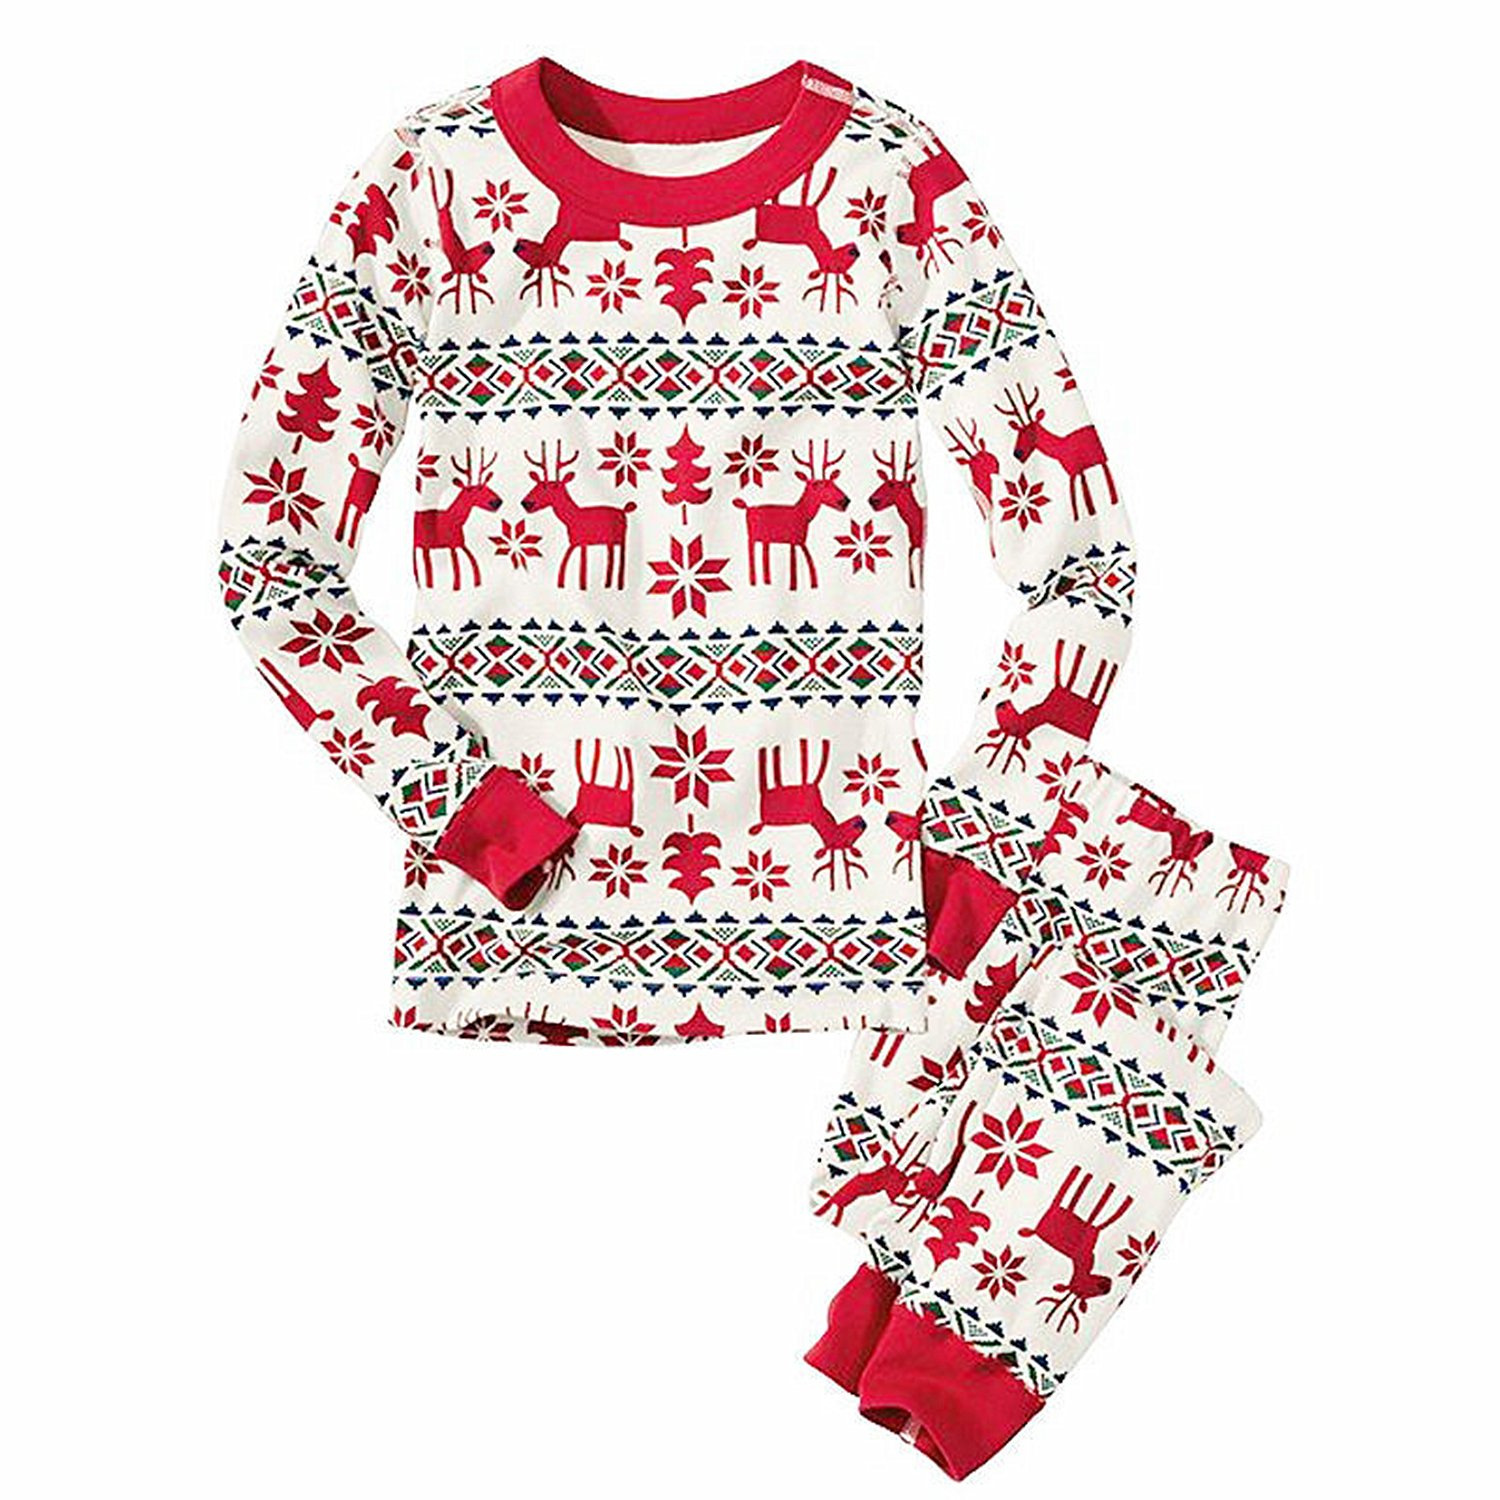 MAIPOETYRY Christmas Family Matching Sleepwear Homewear Pajamas Set